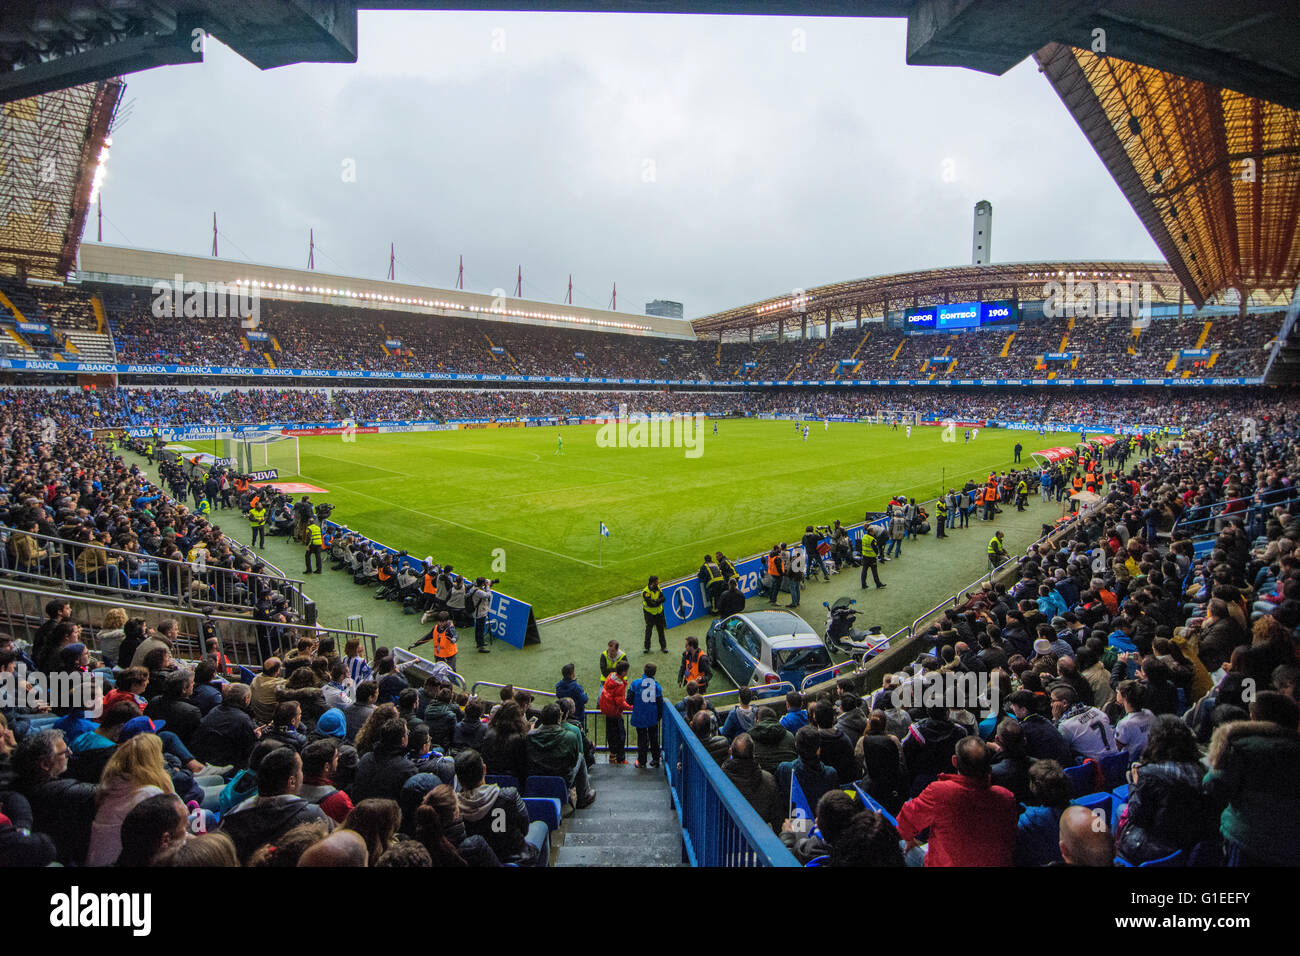 La Coruña, Spain. 14th May, 2016. during the football match of last round of Season 2016/2017 of Spanish league - Stock Image